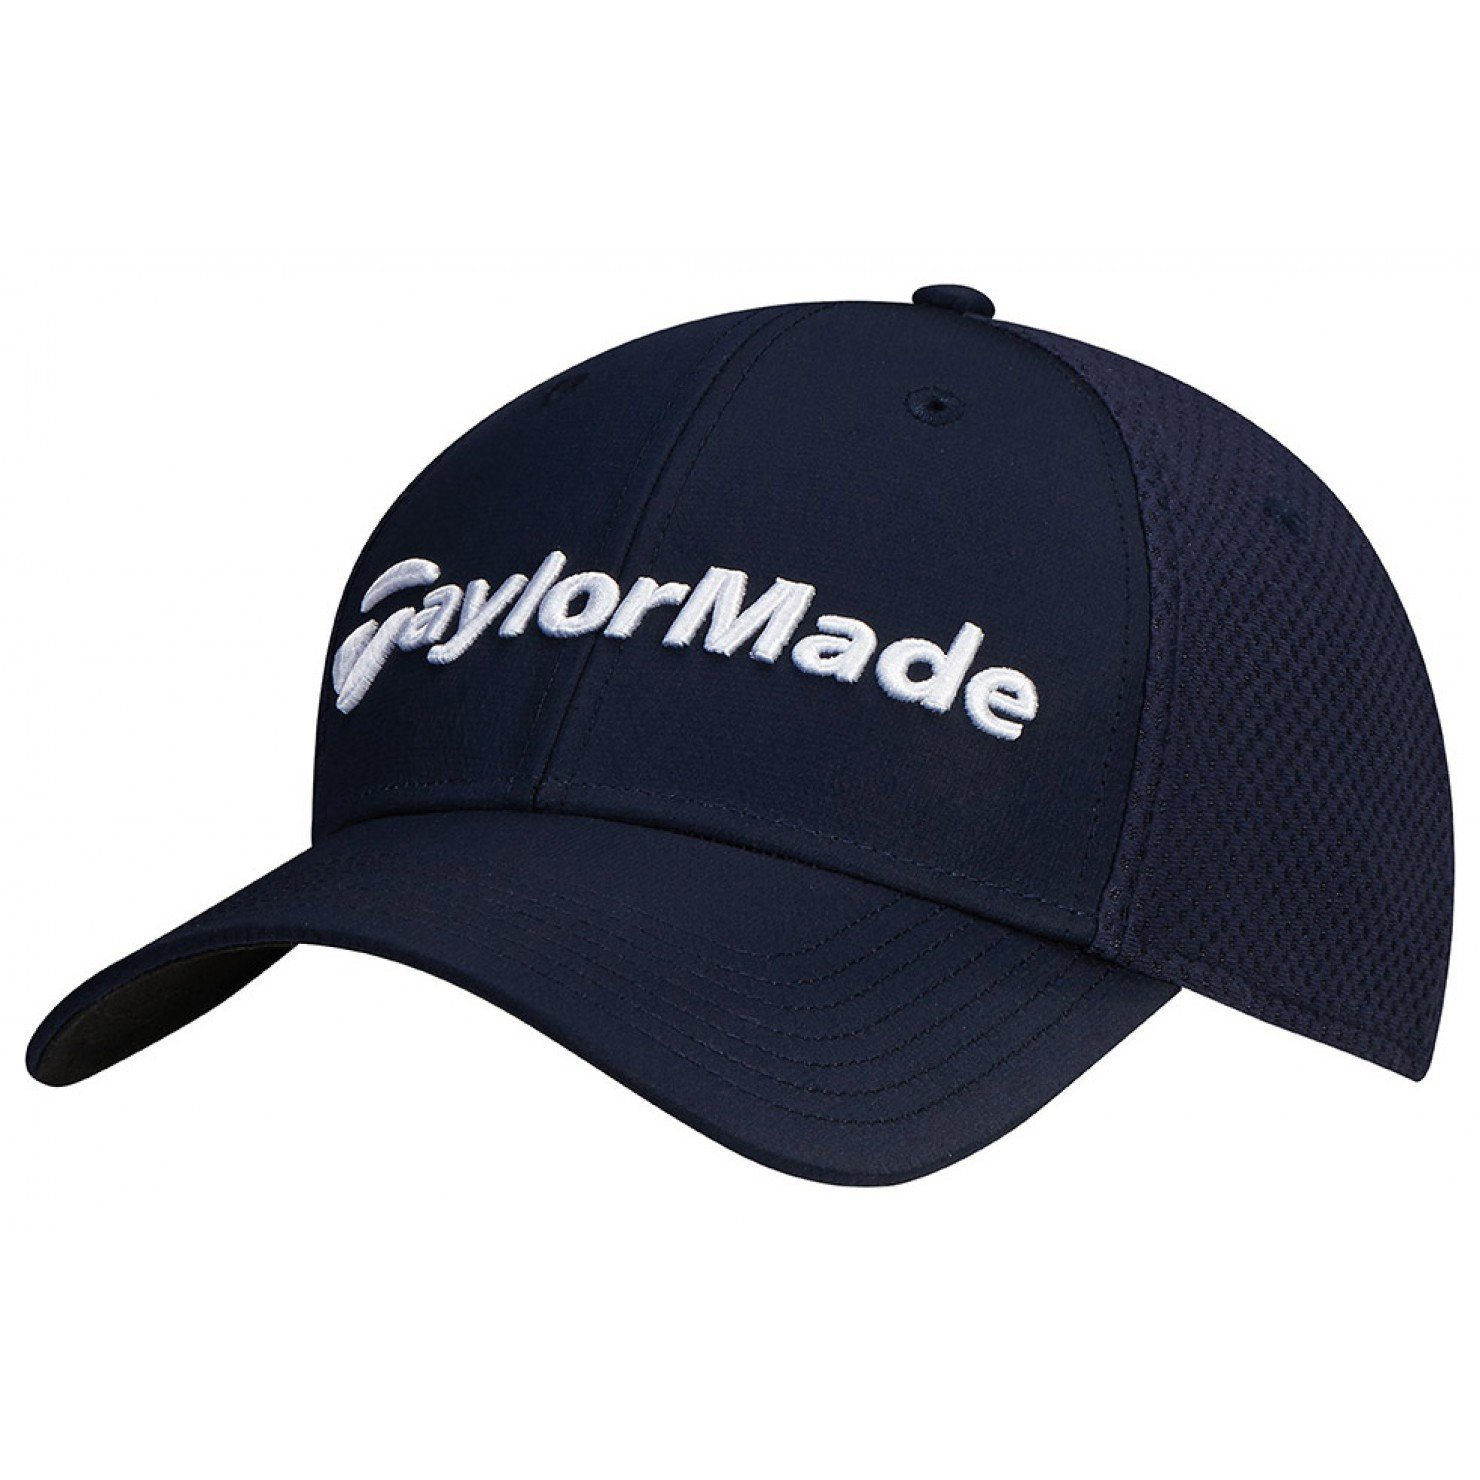 TaylorMade Golf 2017 performance cage hat navy s/m